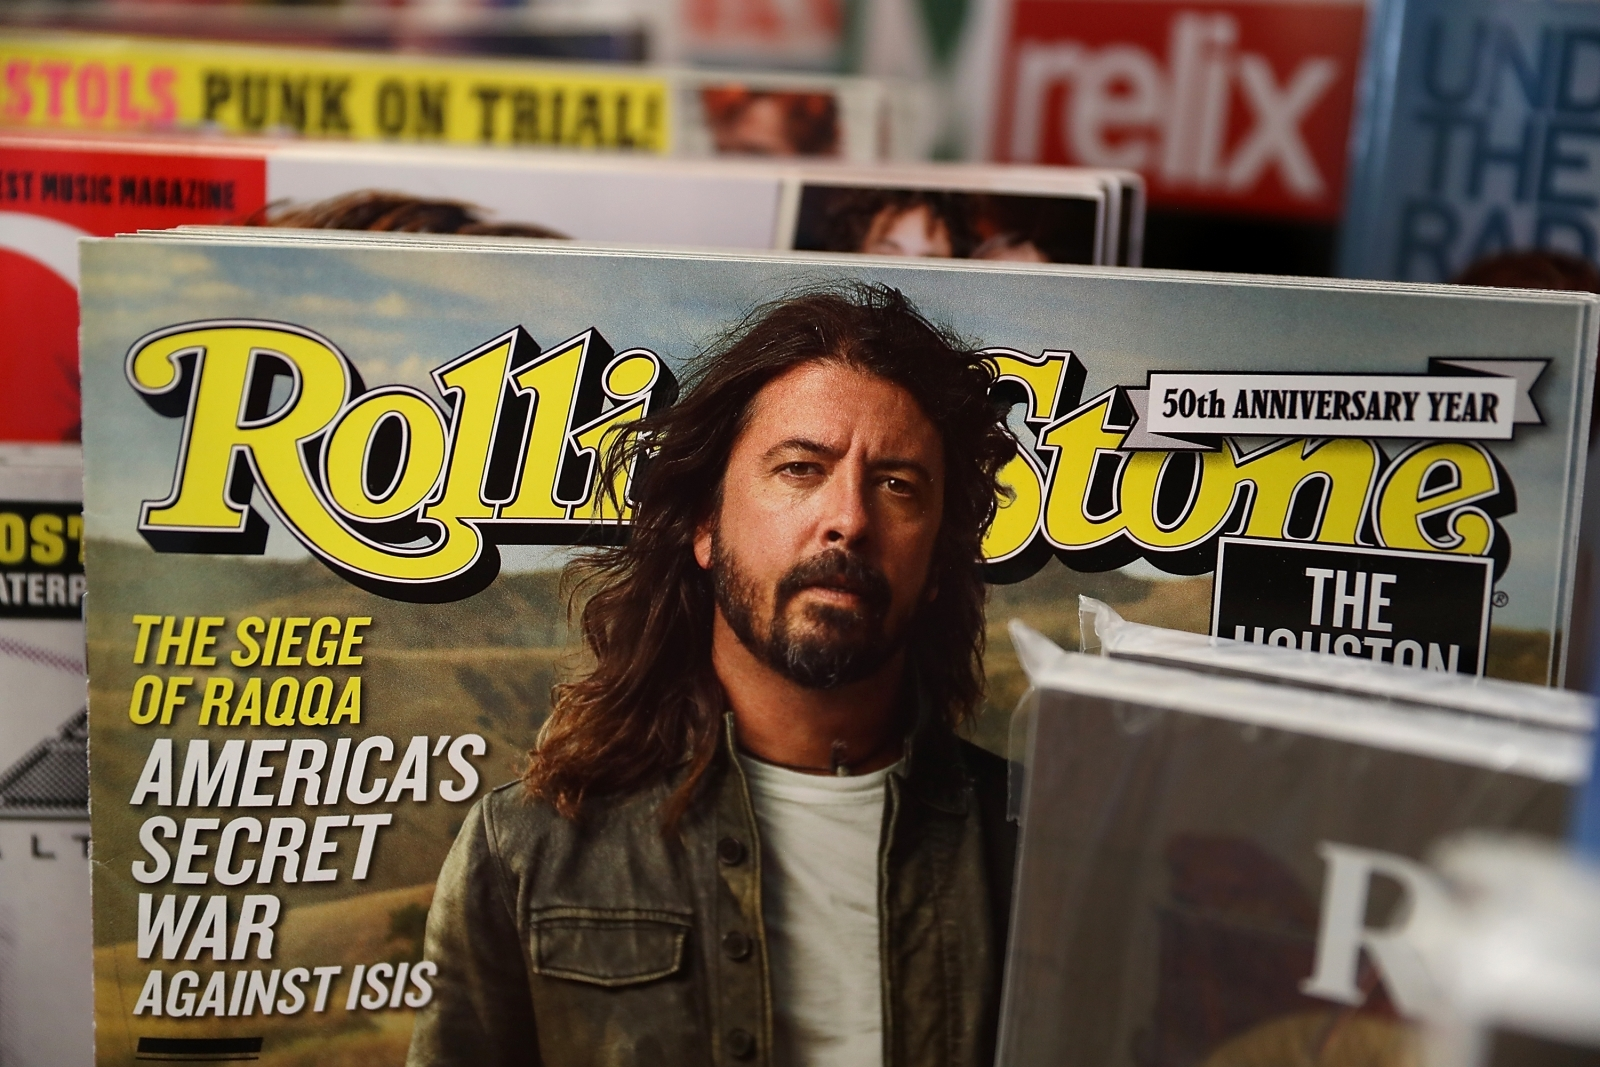 'Rolling Stone' bought by Penske Media (who own 'Variety,' 'Deadline' & more)